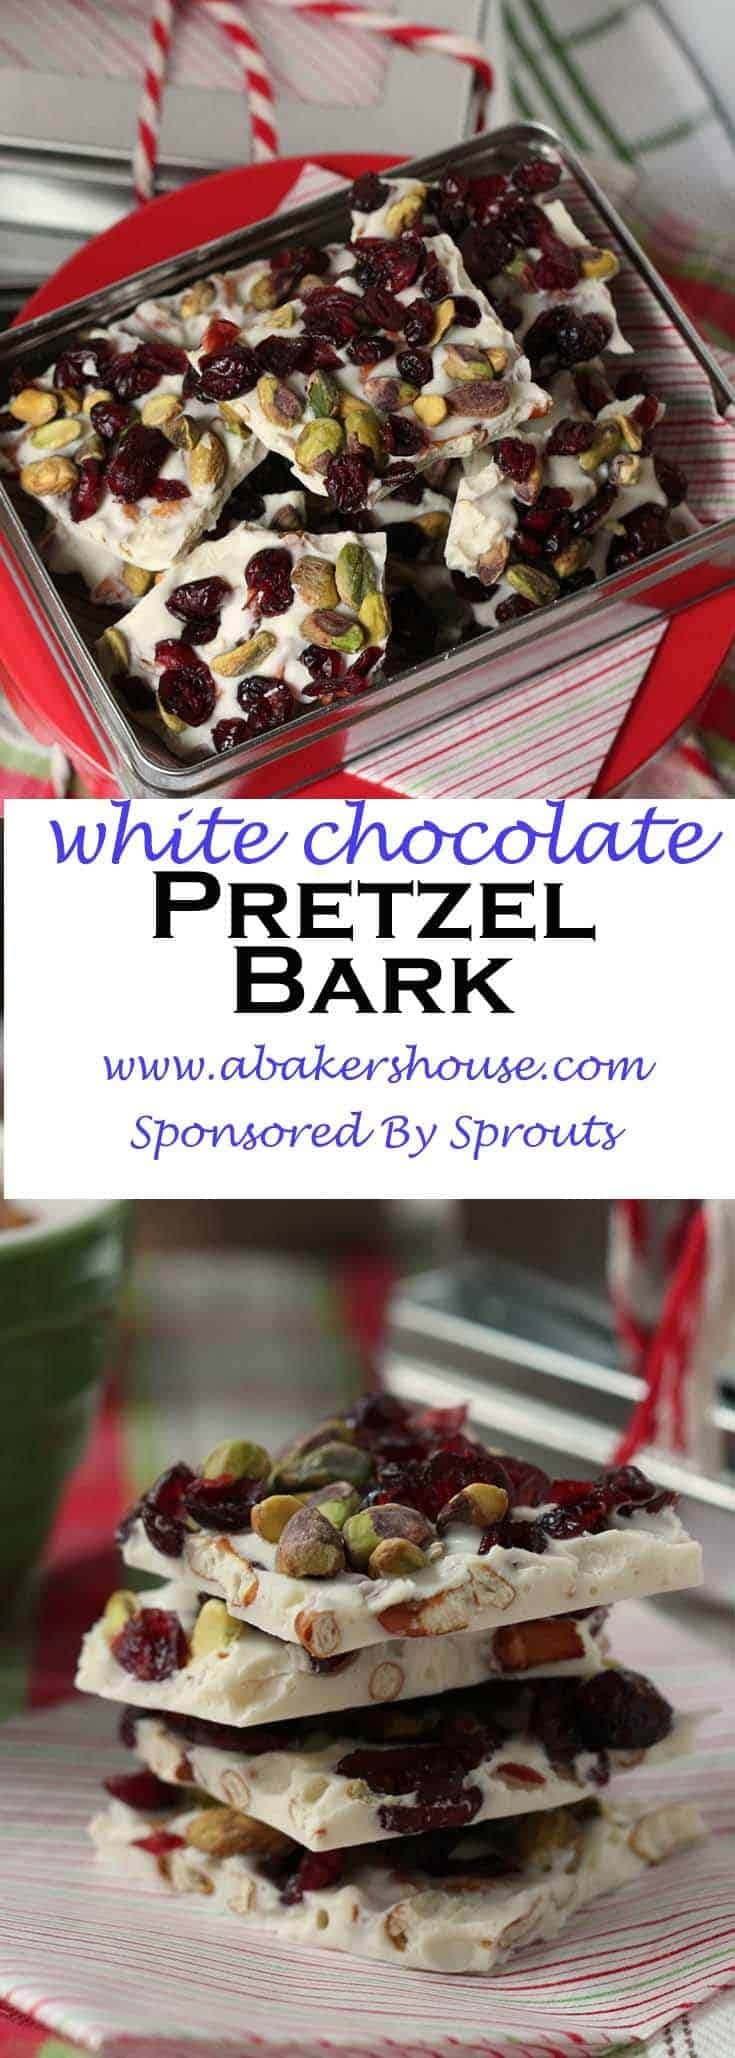 White Chocolate Pretzel Bark is layer upon layer of sweet and salty. Chocolate, dried fruit, nuts and pretzels create the perfect bite. #abakershouse #sponsored #Sprouts #chocolatebark #nobakedessert #whitechocolatebark